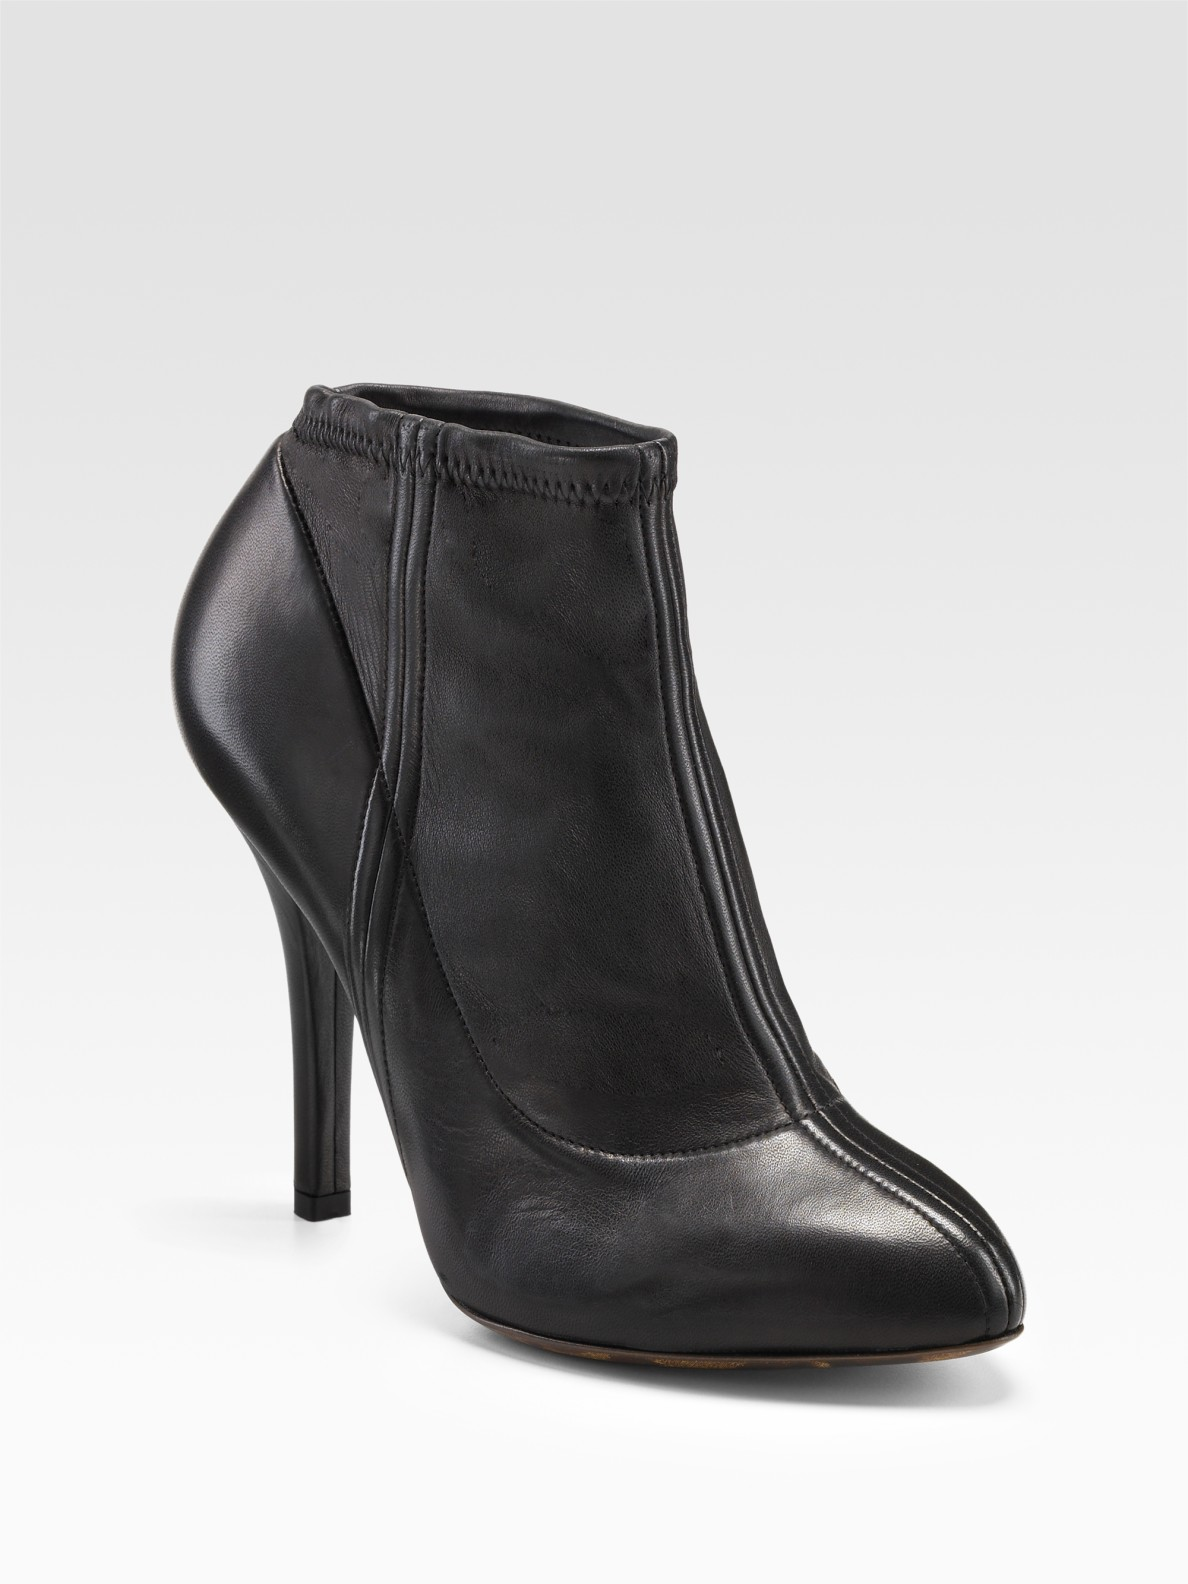 dolce gabbana stretch ankle boots in black lyst